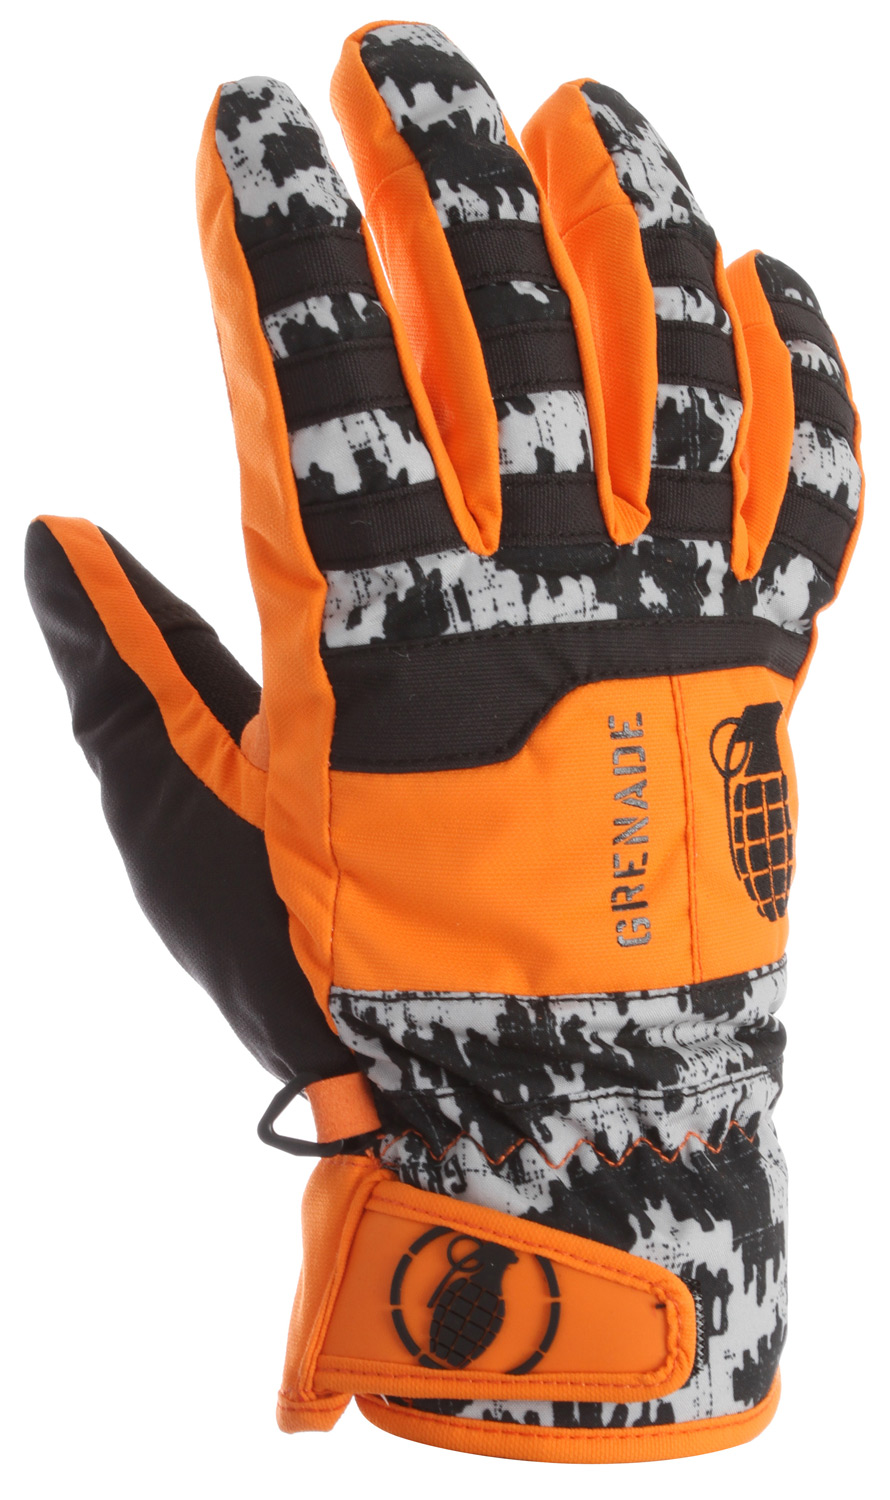 Snowboard Key Features of the Grenade Fragment Gloves : Nylon body Lorica suede palm Hipora breathable waterproof insert Primaloft insulation Velcro wrist closure Embroidered & screen printed graphics Wicking treatment Primaloft - $40.95